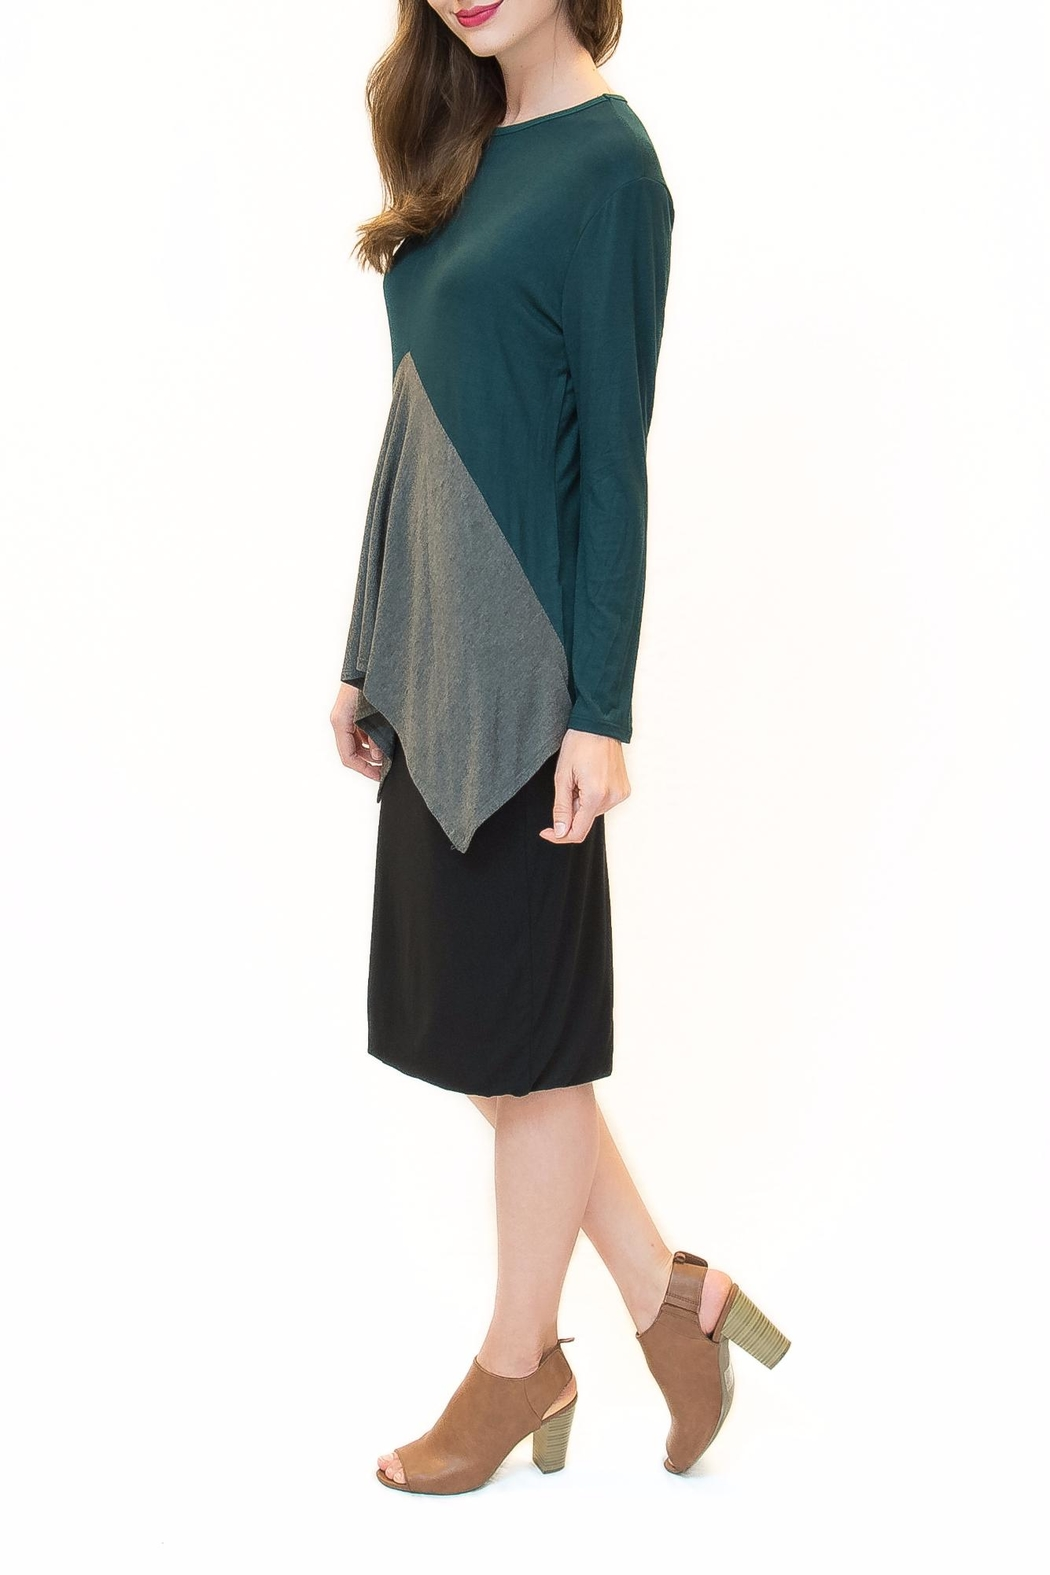 Maya's Place Asymmetrical Combo Color Top - Front Full Image